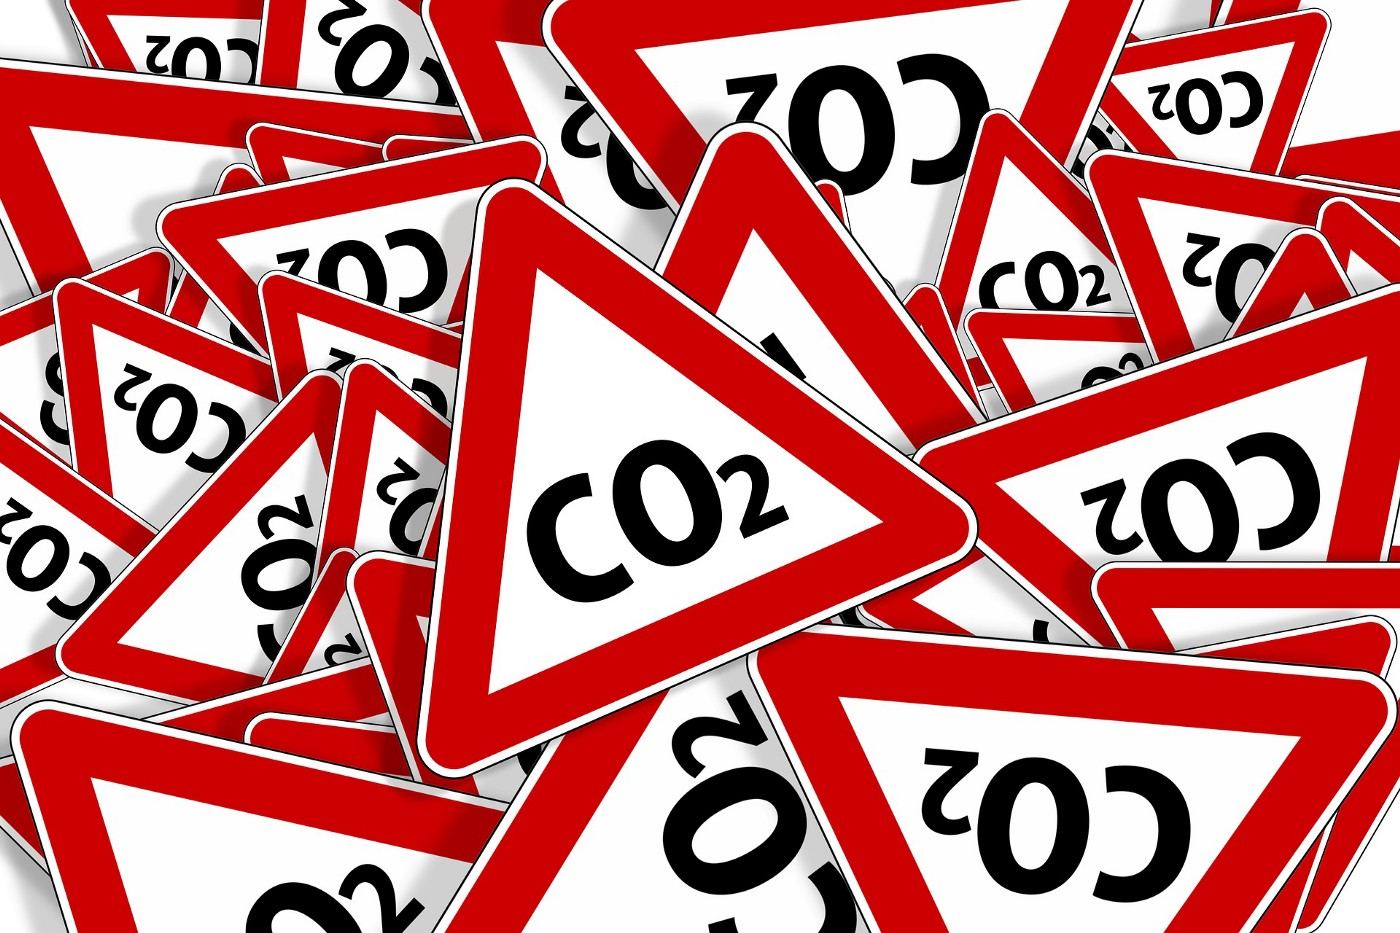 Image shows graphics with Carbon Dioxide text